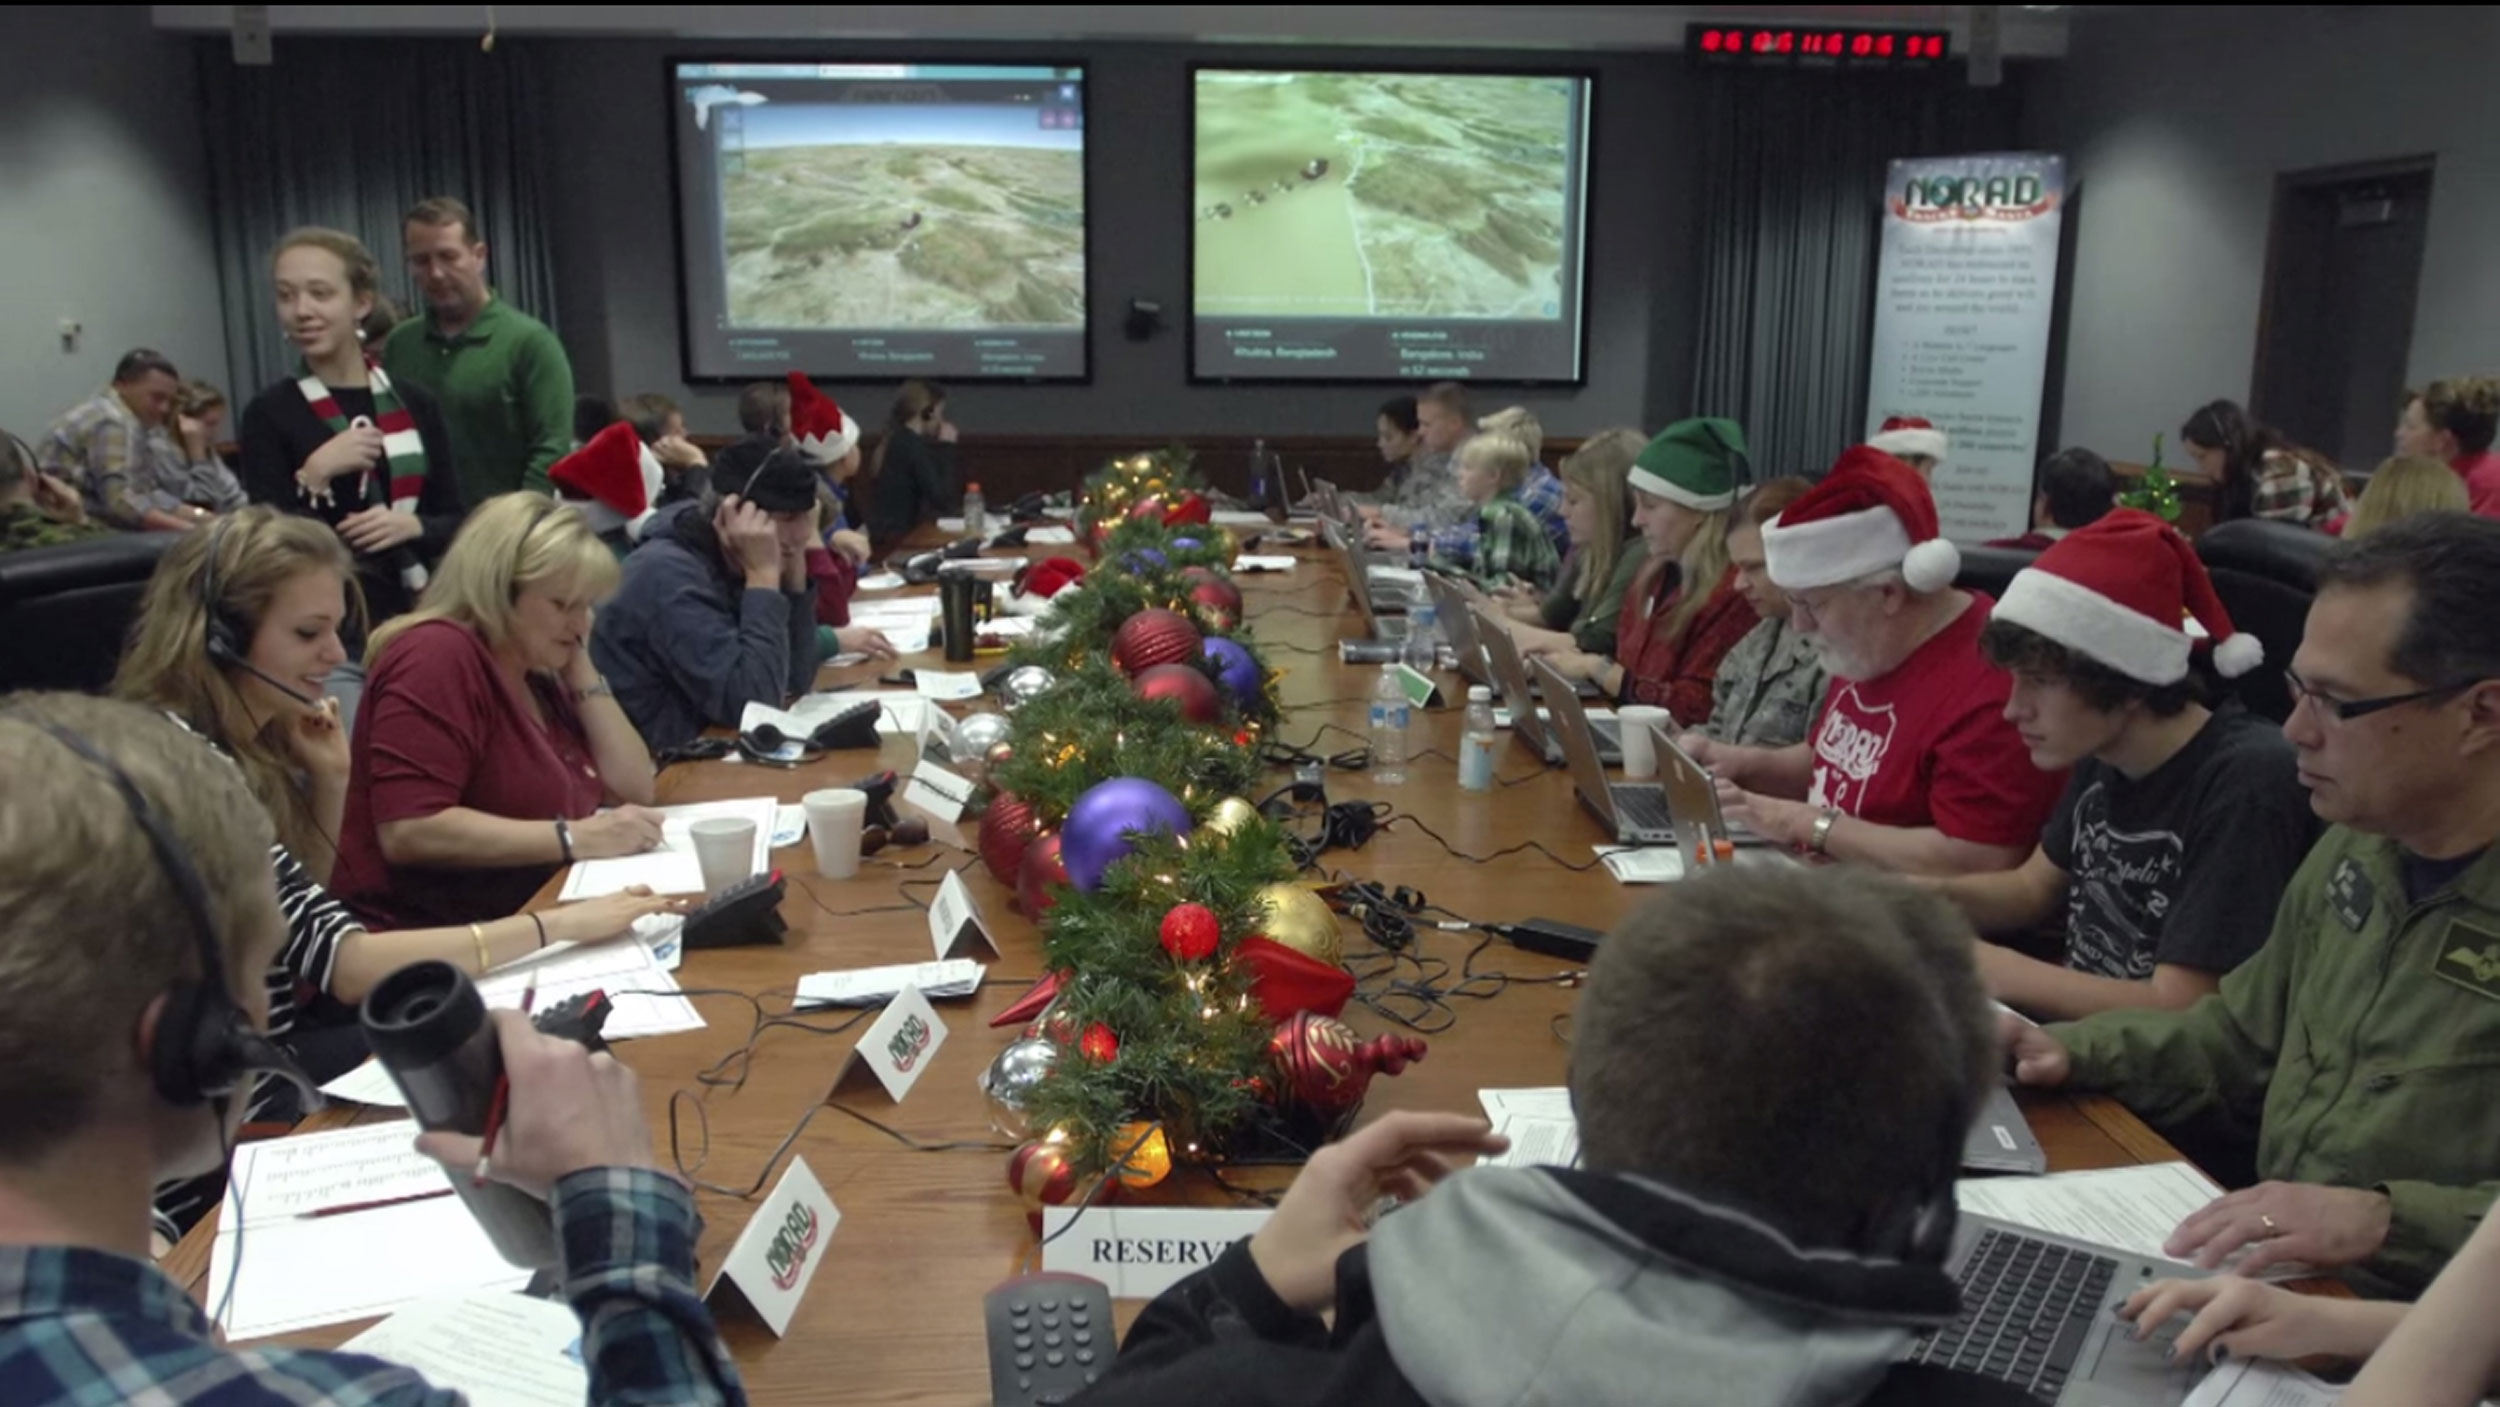 NORAD tracks Santa as he starts his journey on Dec. 24, 2014. Santa Claus has embarked on his annual Christmas Eve mission to deliver presents to millions of children after a smooth take-off from his North Pole base, at least according to U.S. military officials who track his reindeer-powered sleigh.